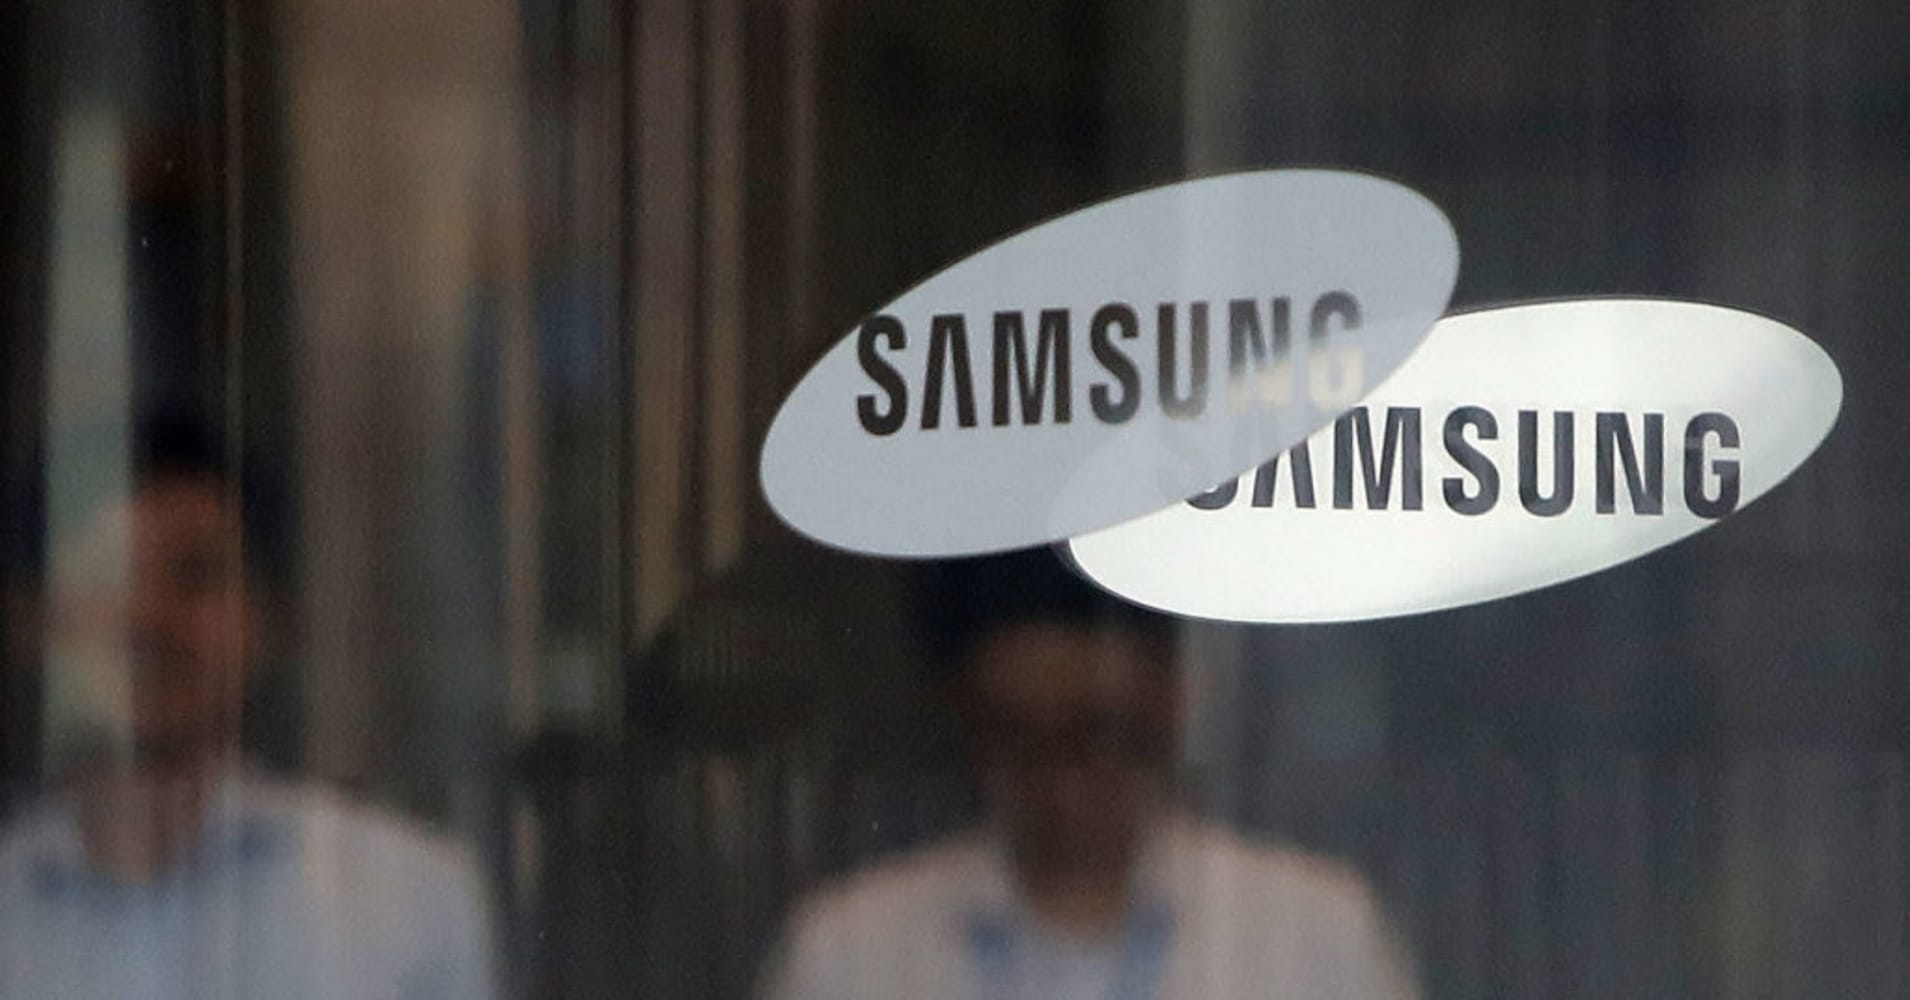 Samsung surpasses intel as worlds biggest chipmaker for the first samsung surpasses intel as worlds biggest chipmaker for the first time buycottarizona